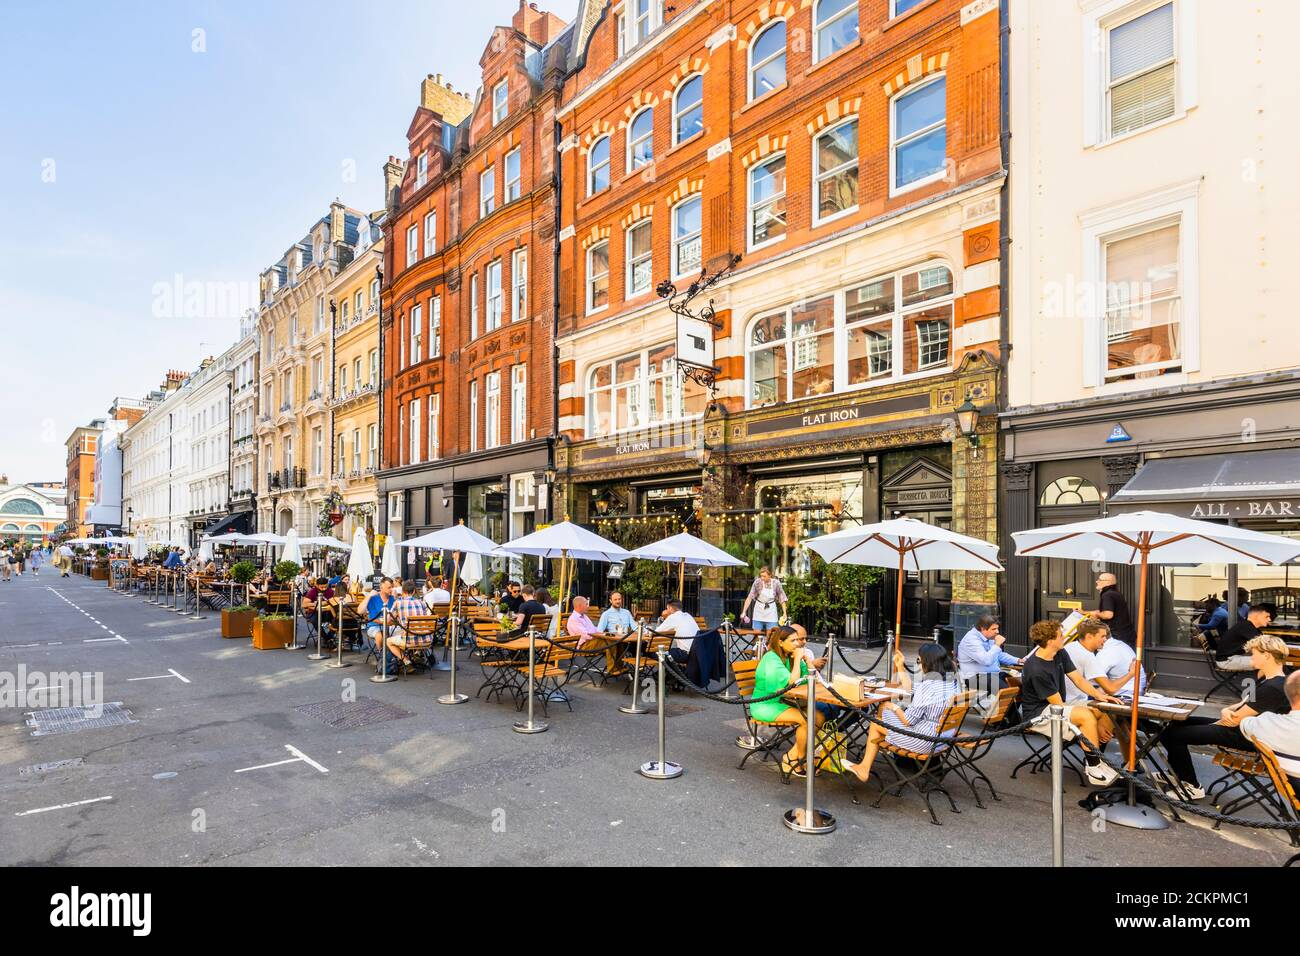 Al fresco roadside lunchtime socialising, dining, eating and drinking in pedestrianised Henrietta Street, Covent Garden, London WC2 on a sunny day Stock Photo